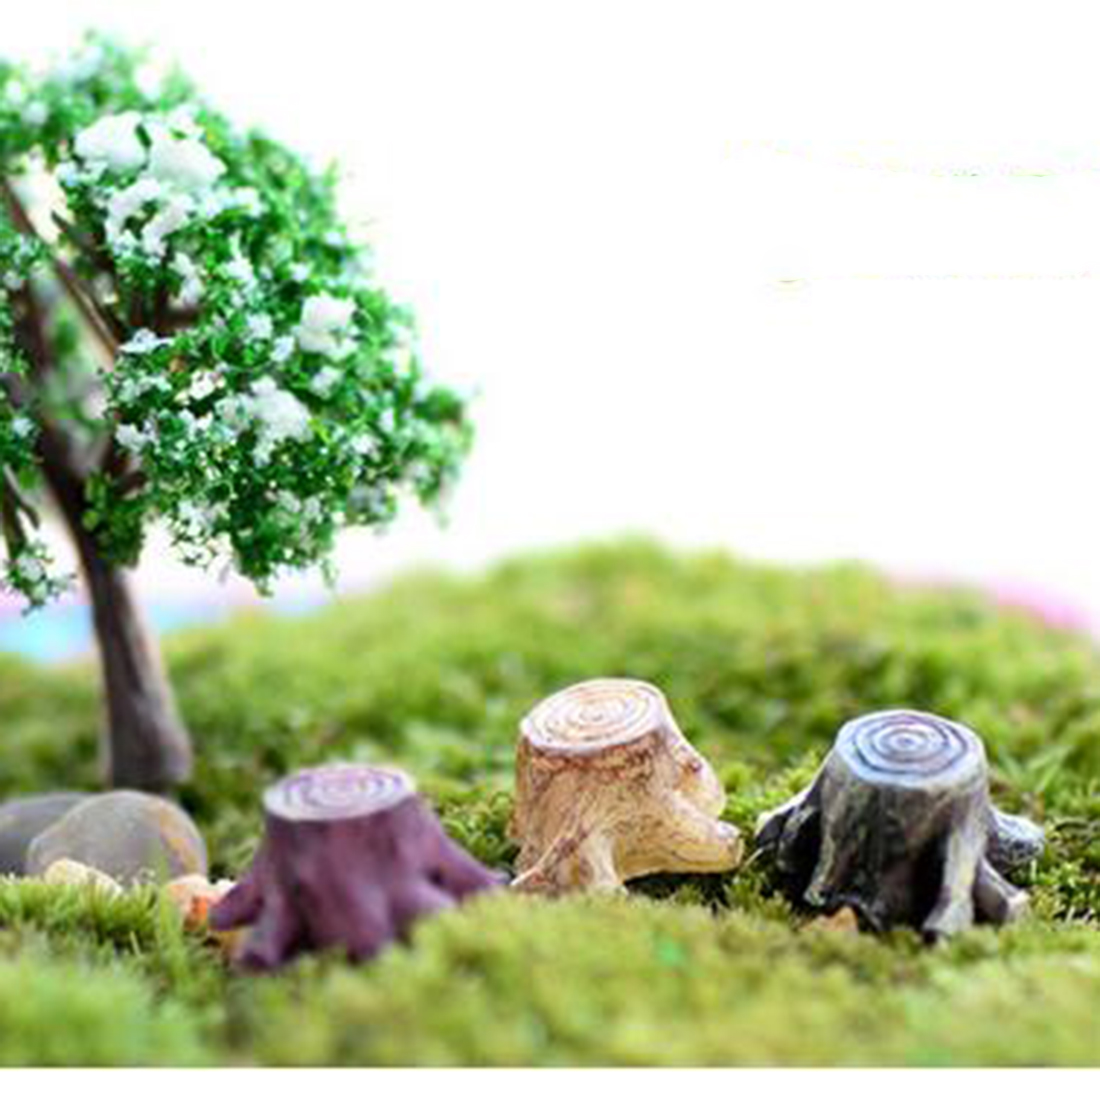 Garden decorations for sale - Aliexpress Com Buy Big Sale Crafts Decorations Miniature Multicolour Tree Stump Fairy Terrarium Christmas Xmas Party Garden Gift From Reliable Garden